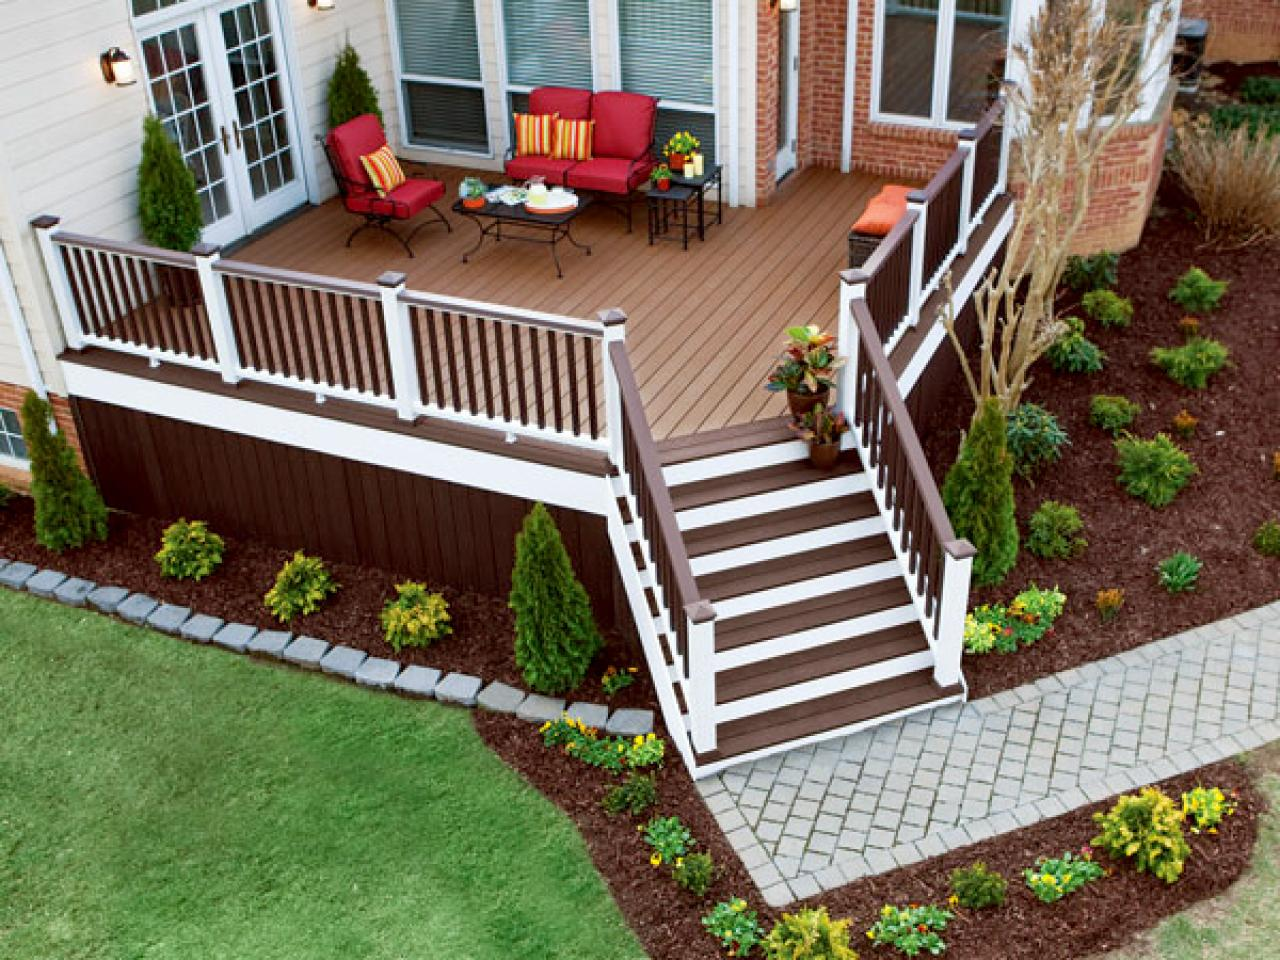 Accessing your deck hgtv for Backyard decks